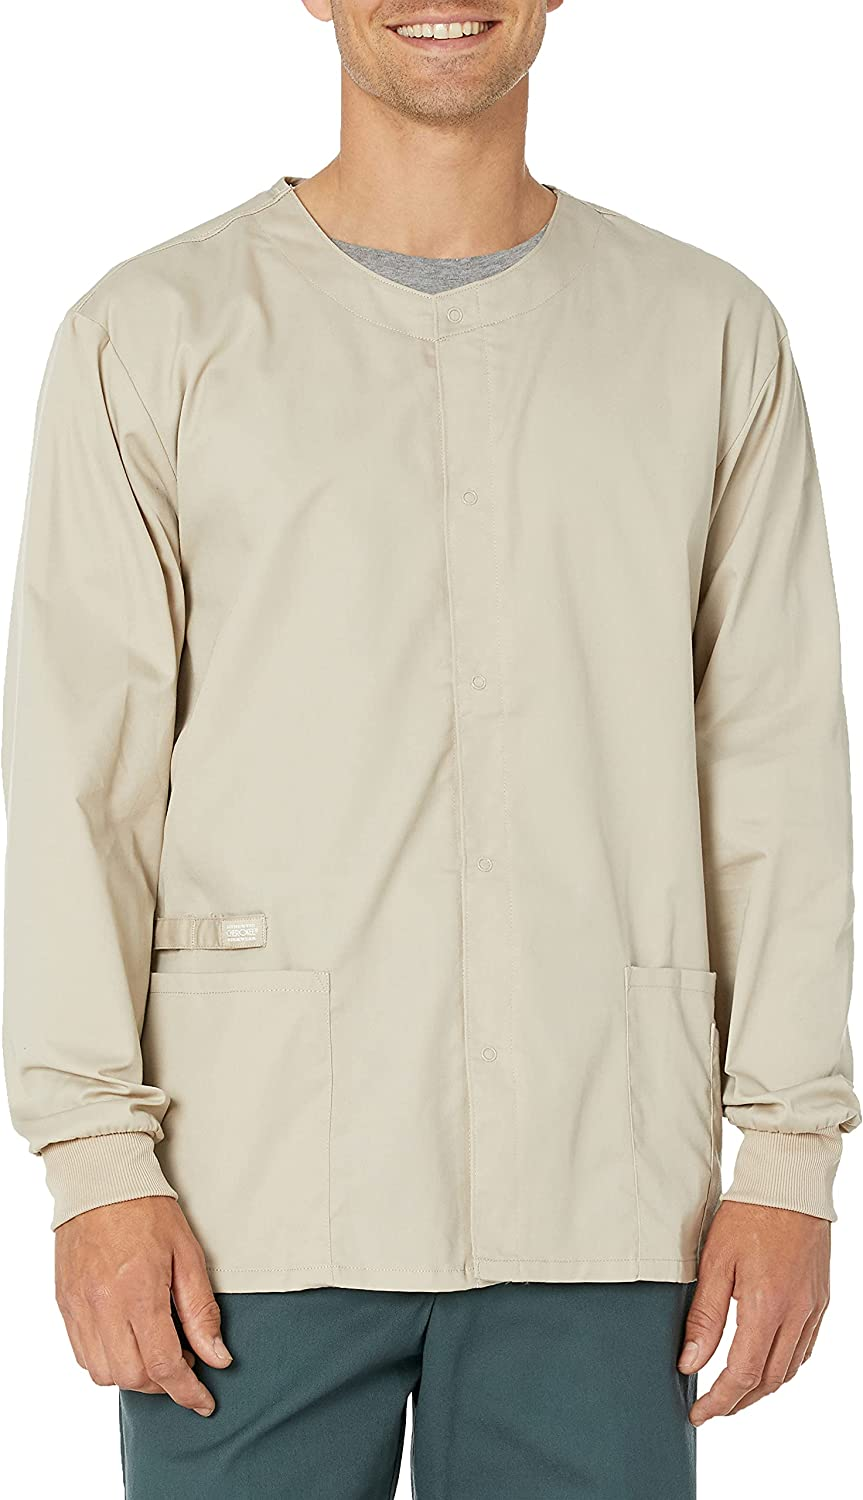 Cherokee Men's Ww Flex with New Orleans Mall Mesa Mall Snap Front Unisex Warm-up Certainty